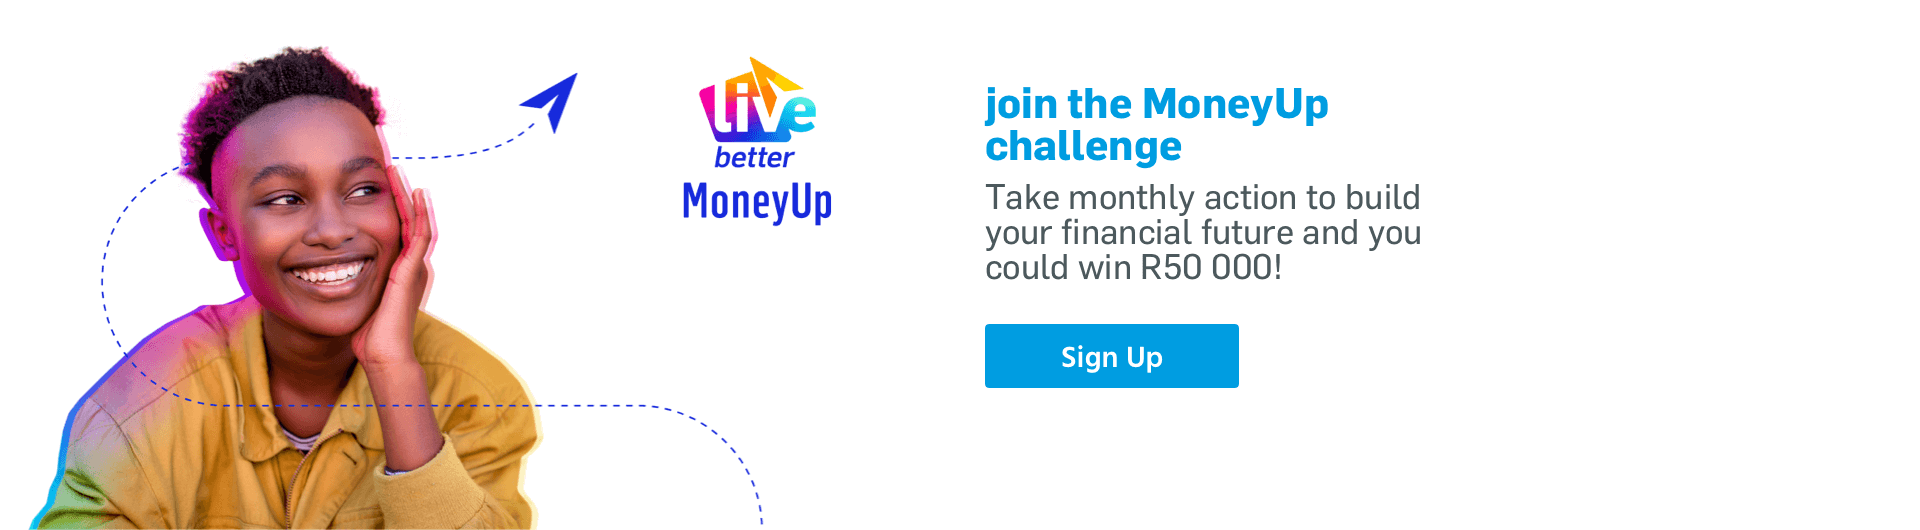 Live Better Money Up campaign